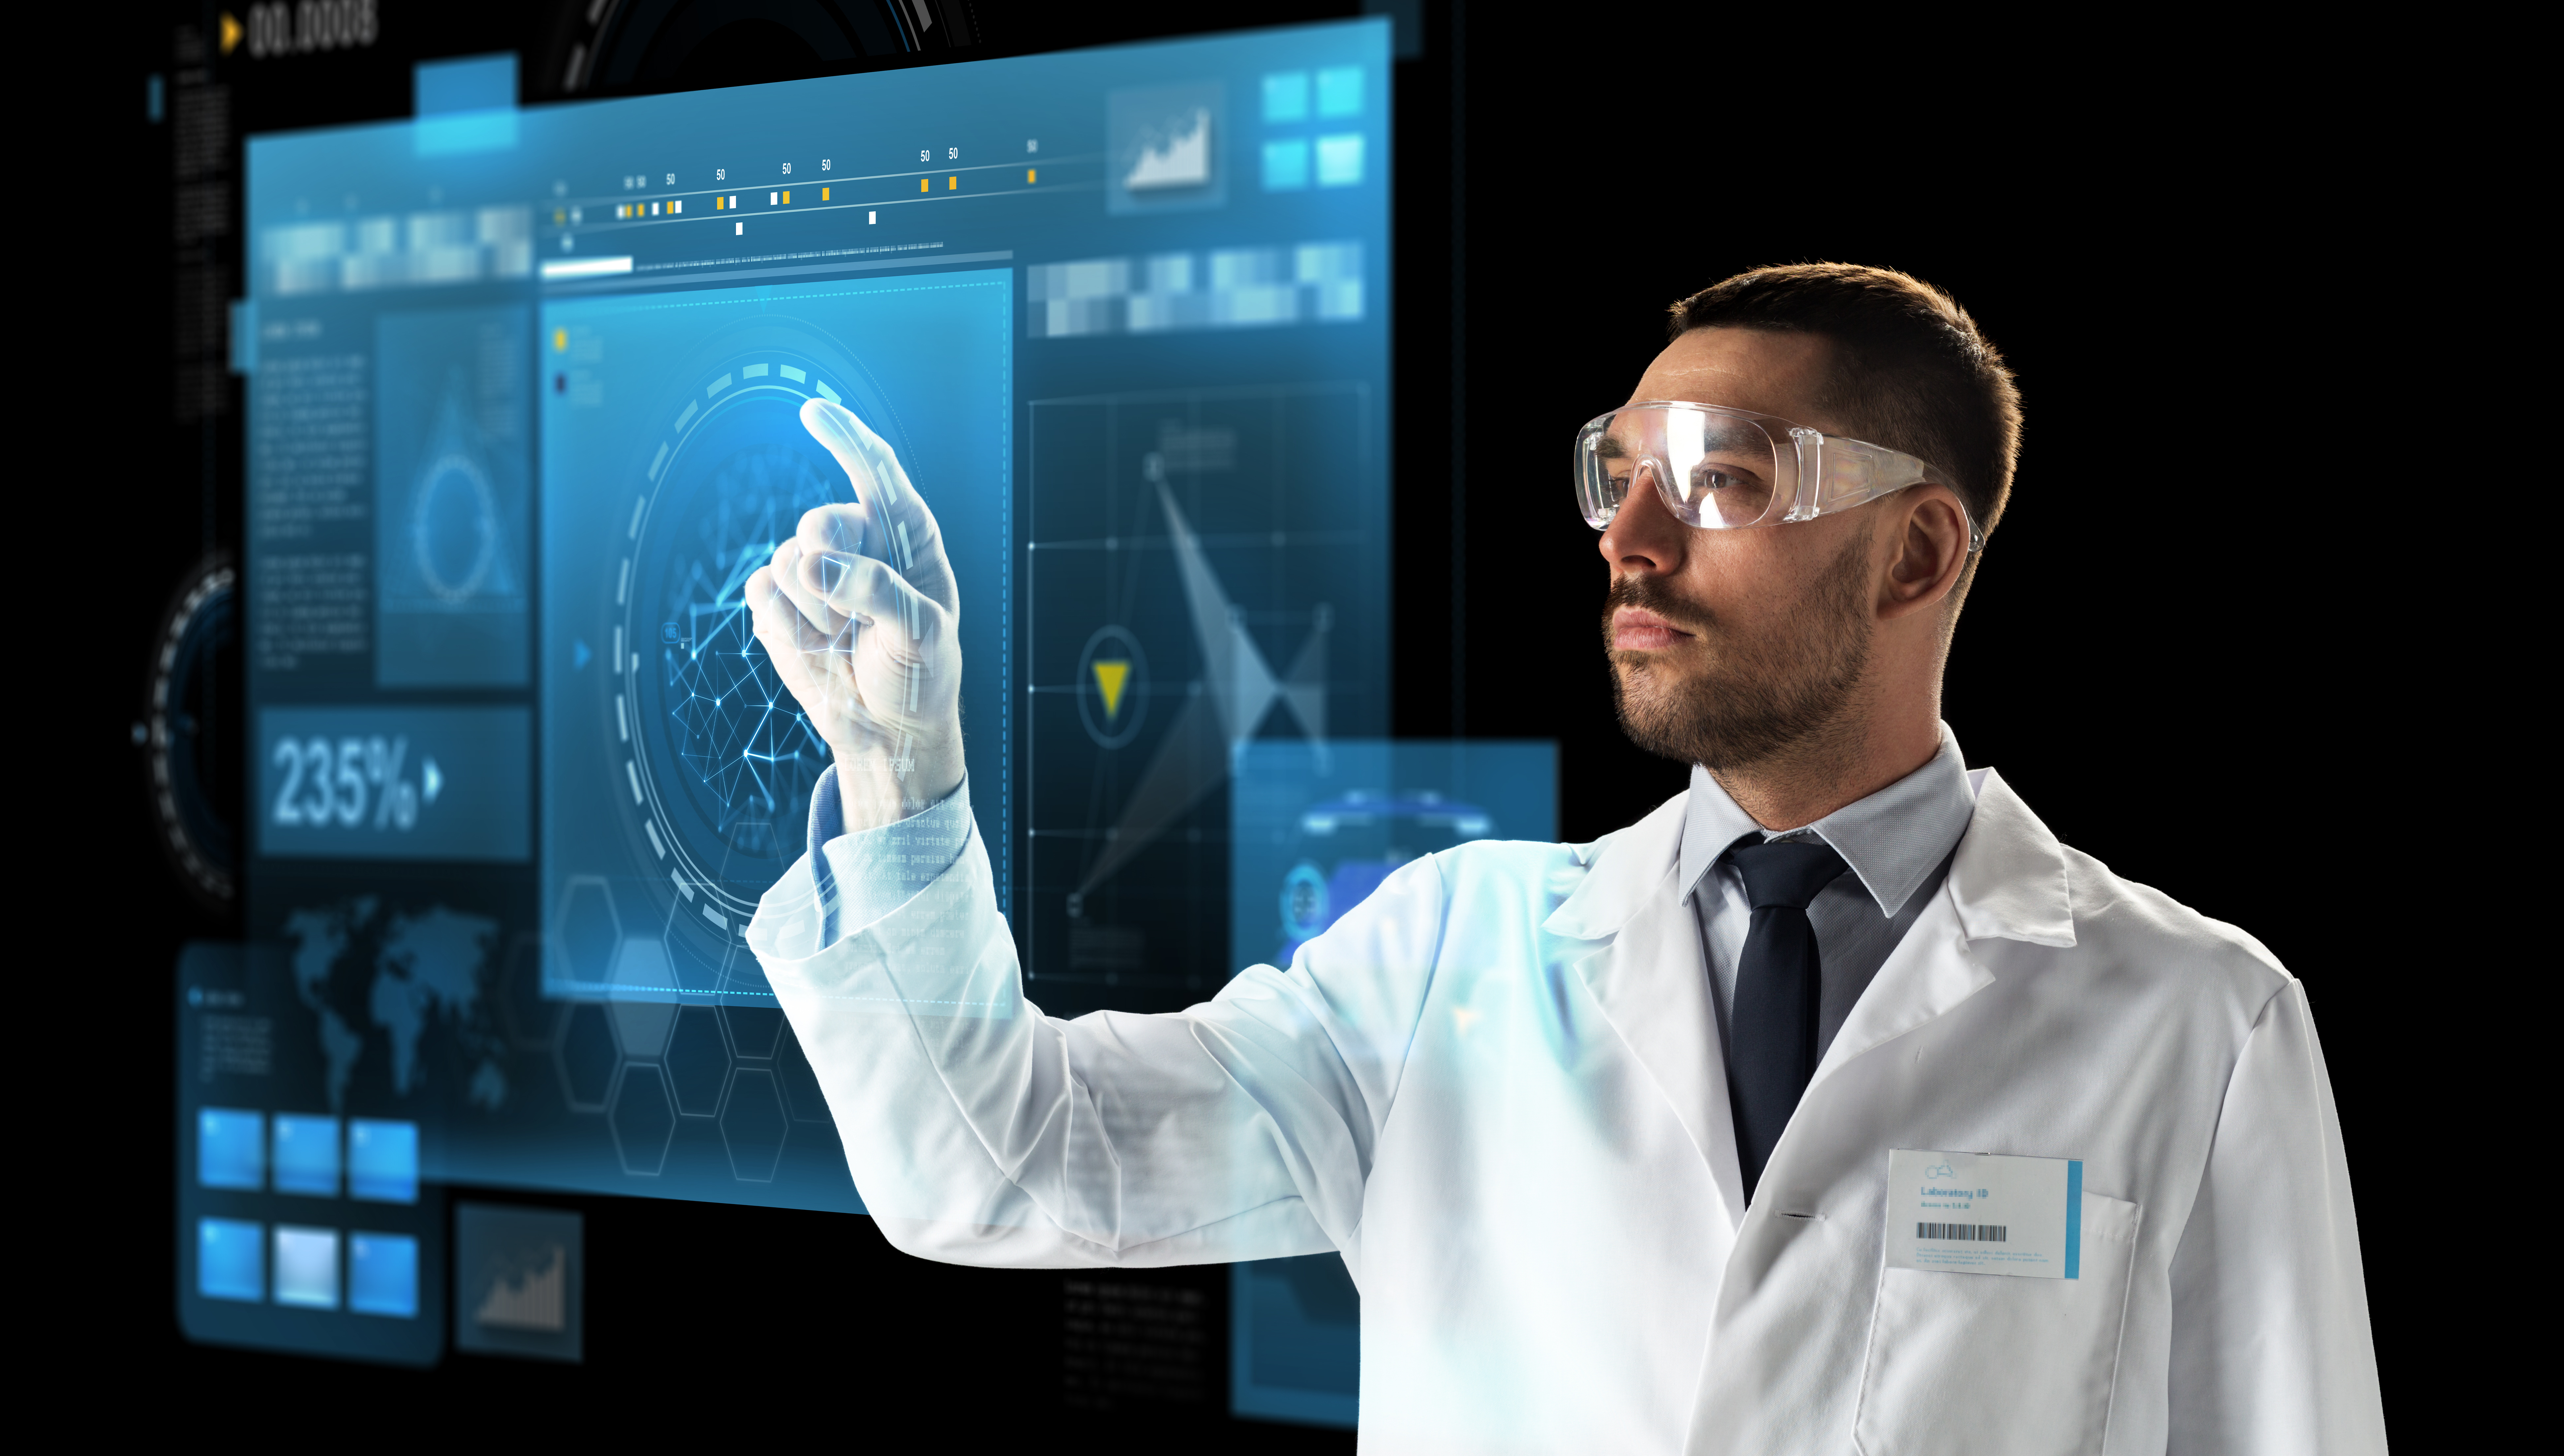 science, future technology and people concept - male doctor or scientist in white coat and safety glasses touching virtual screen over black background